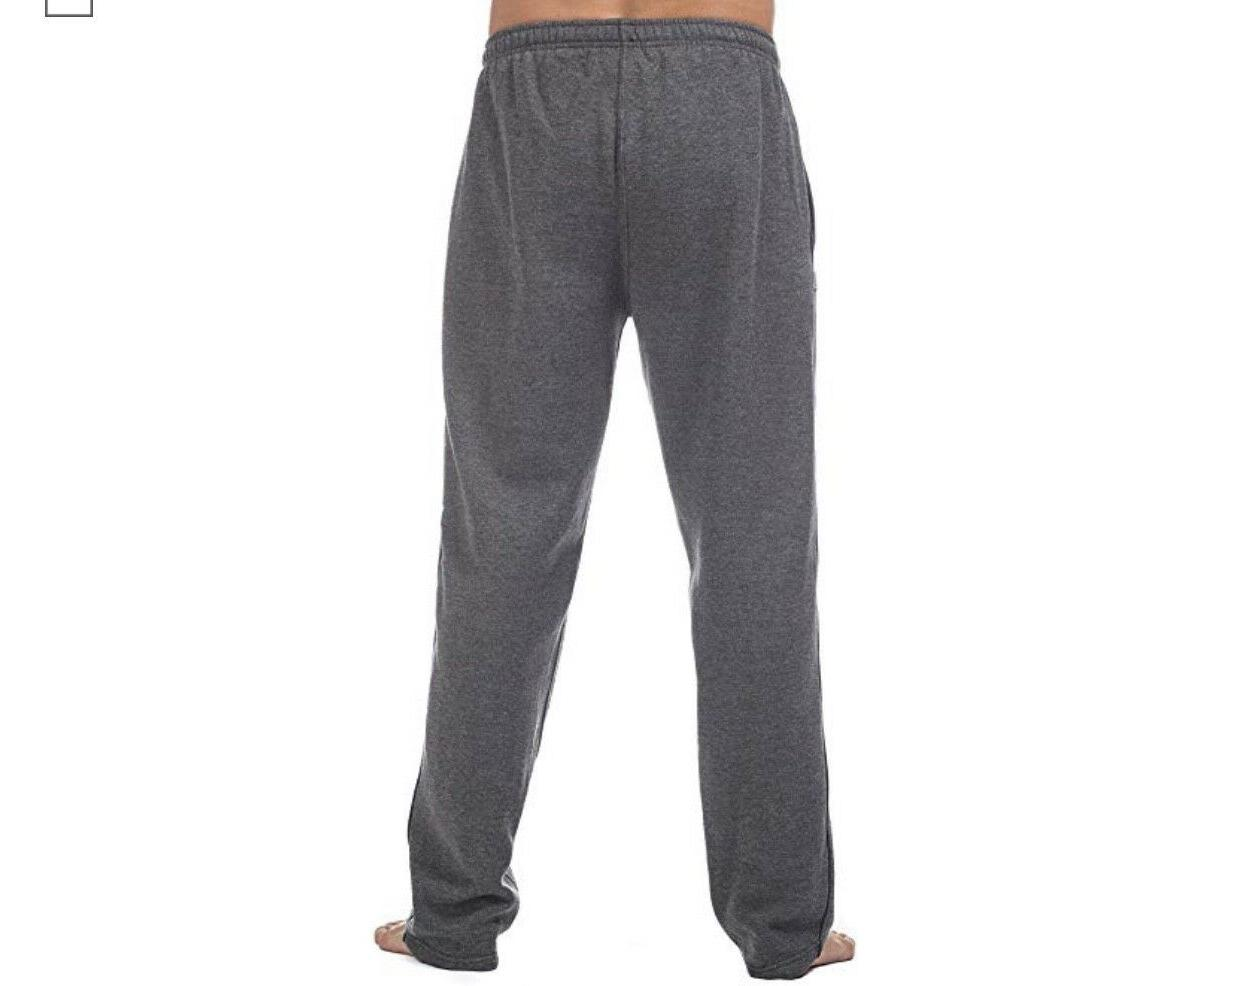 PRO SWEAT JOGGERS COMFORT MEN'S FLEECE PANT OPEN S-7XL